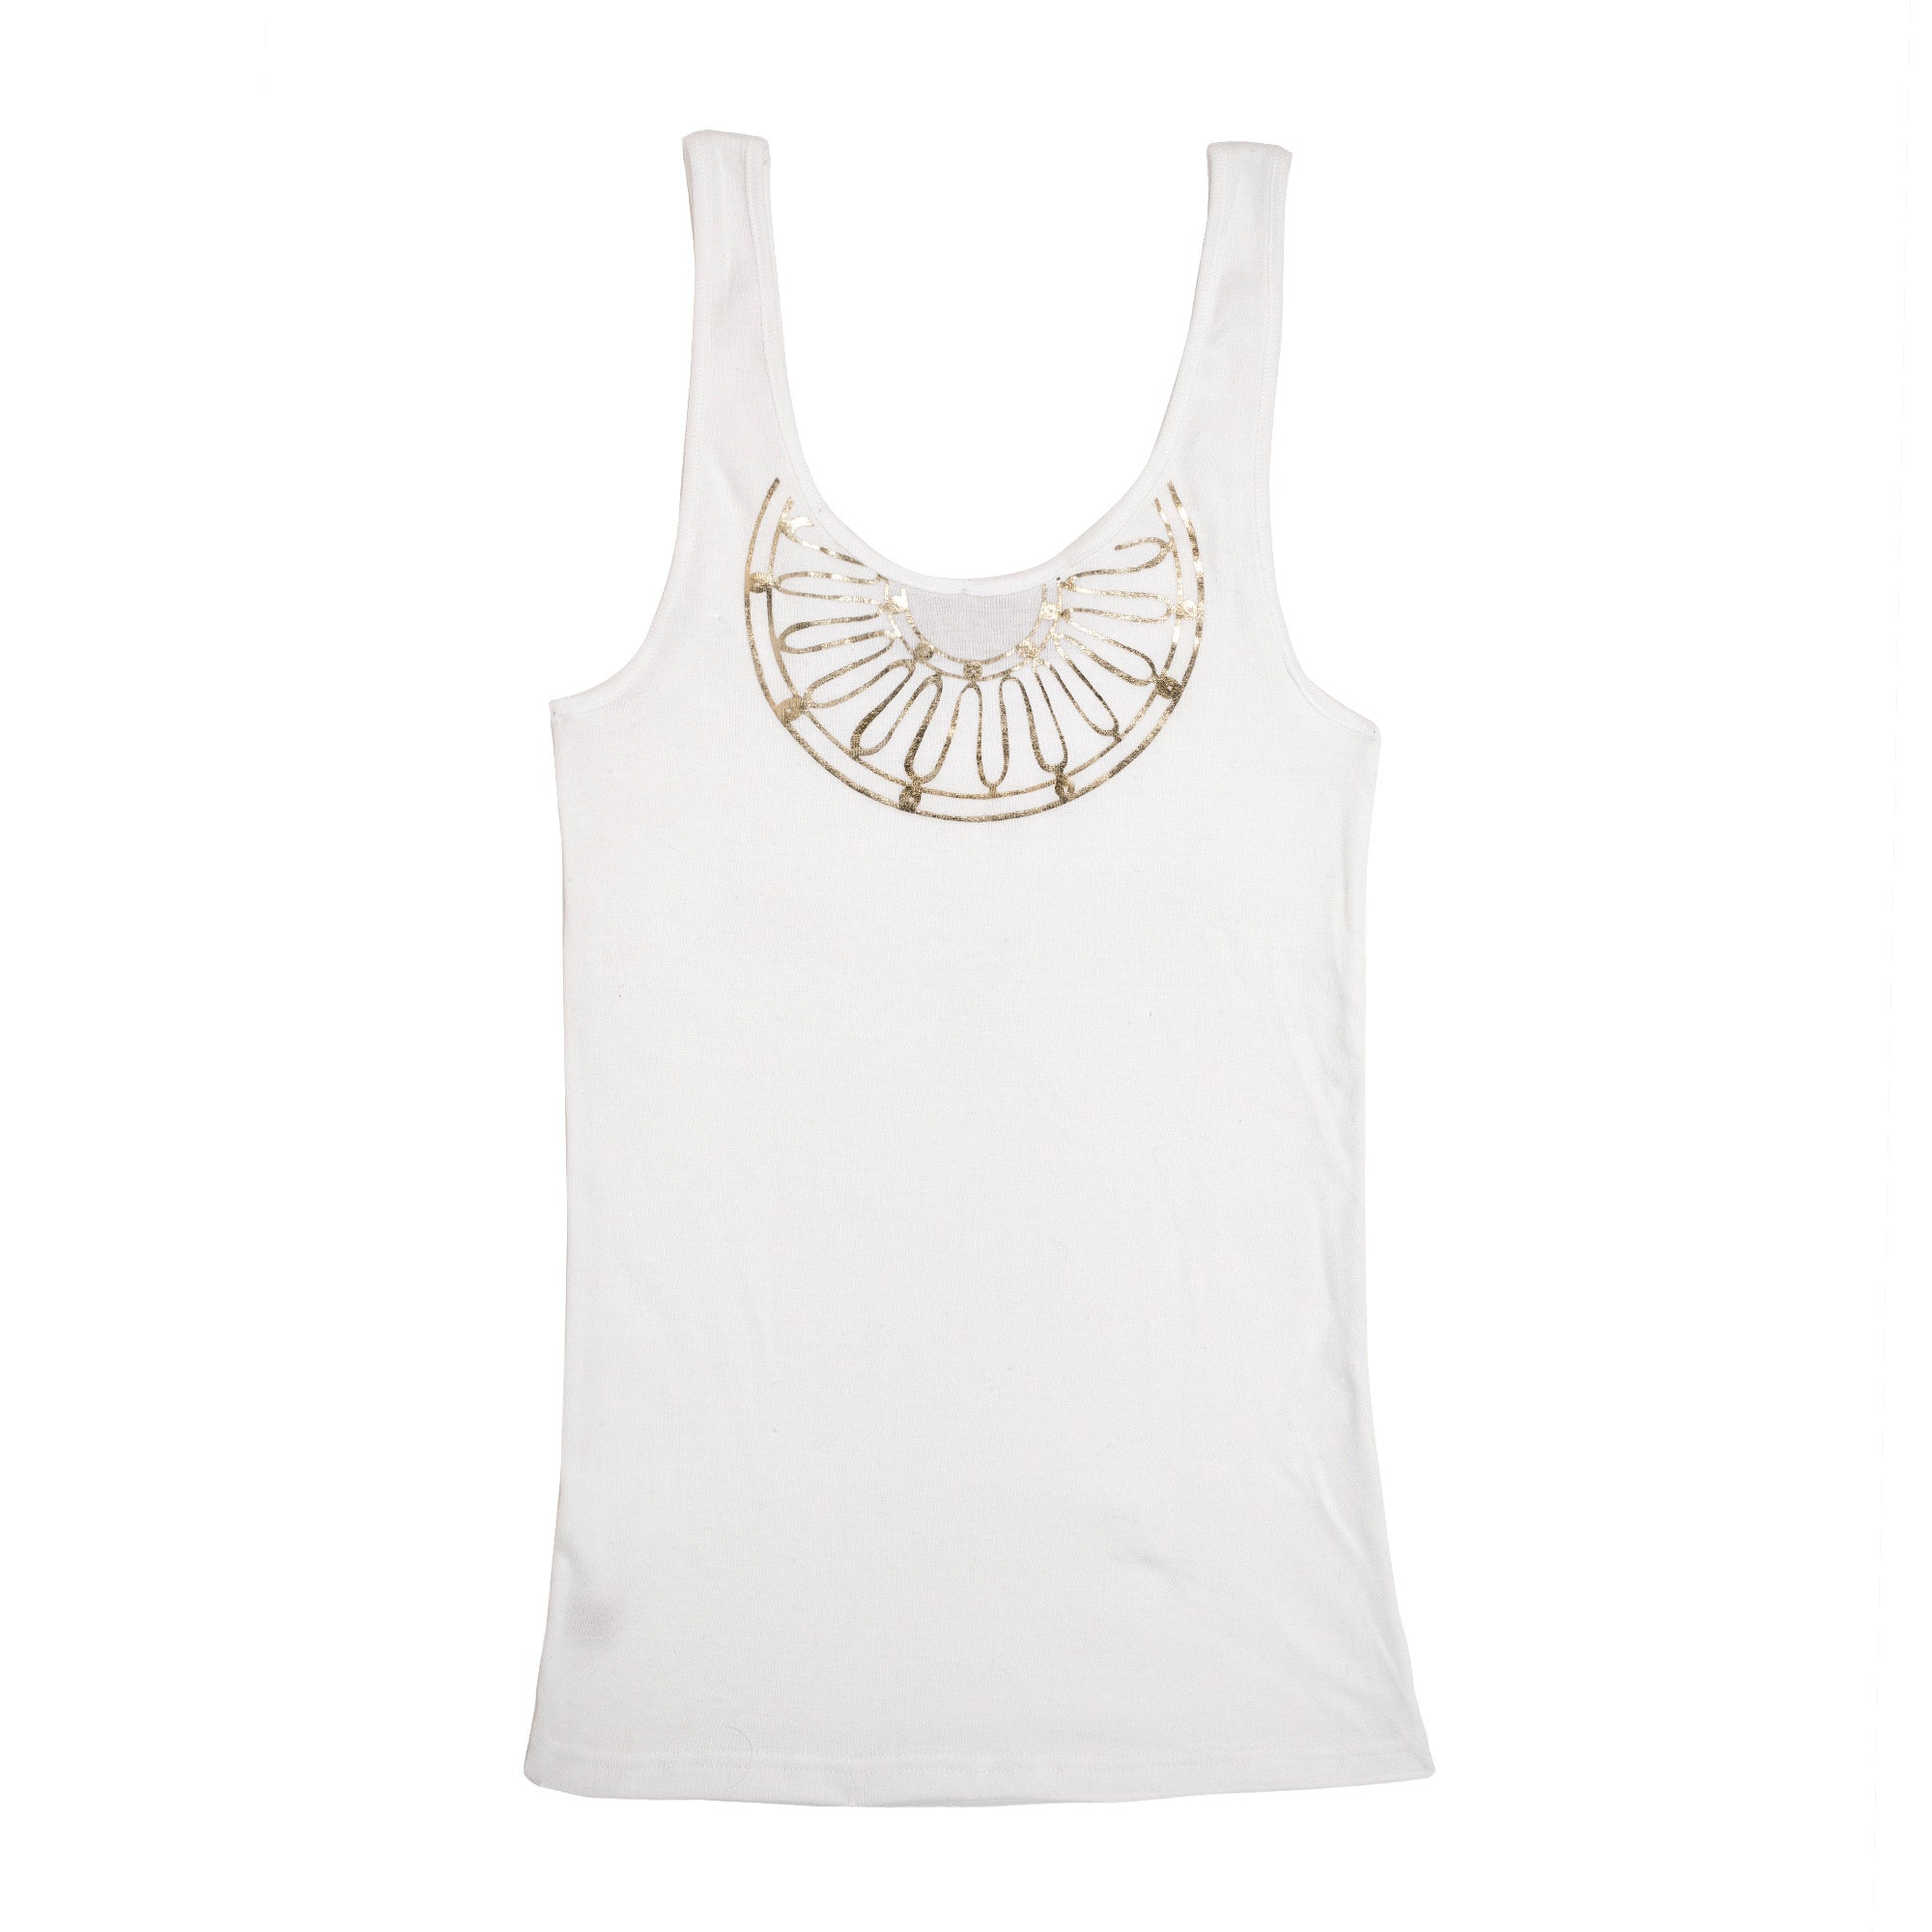 The Kyma Gold Tank Top